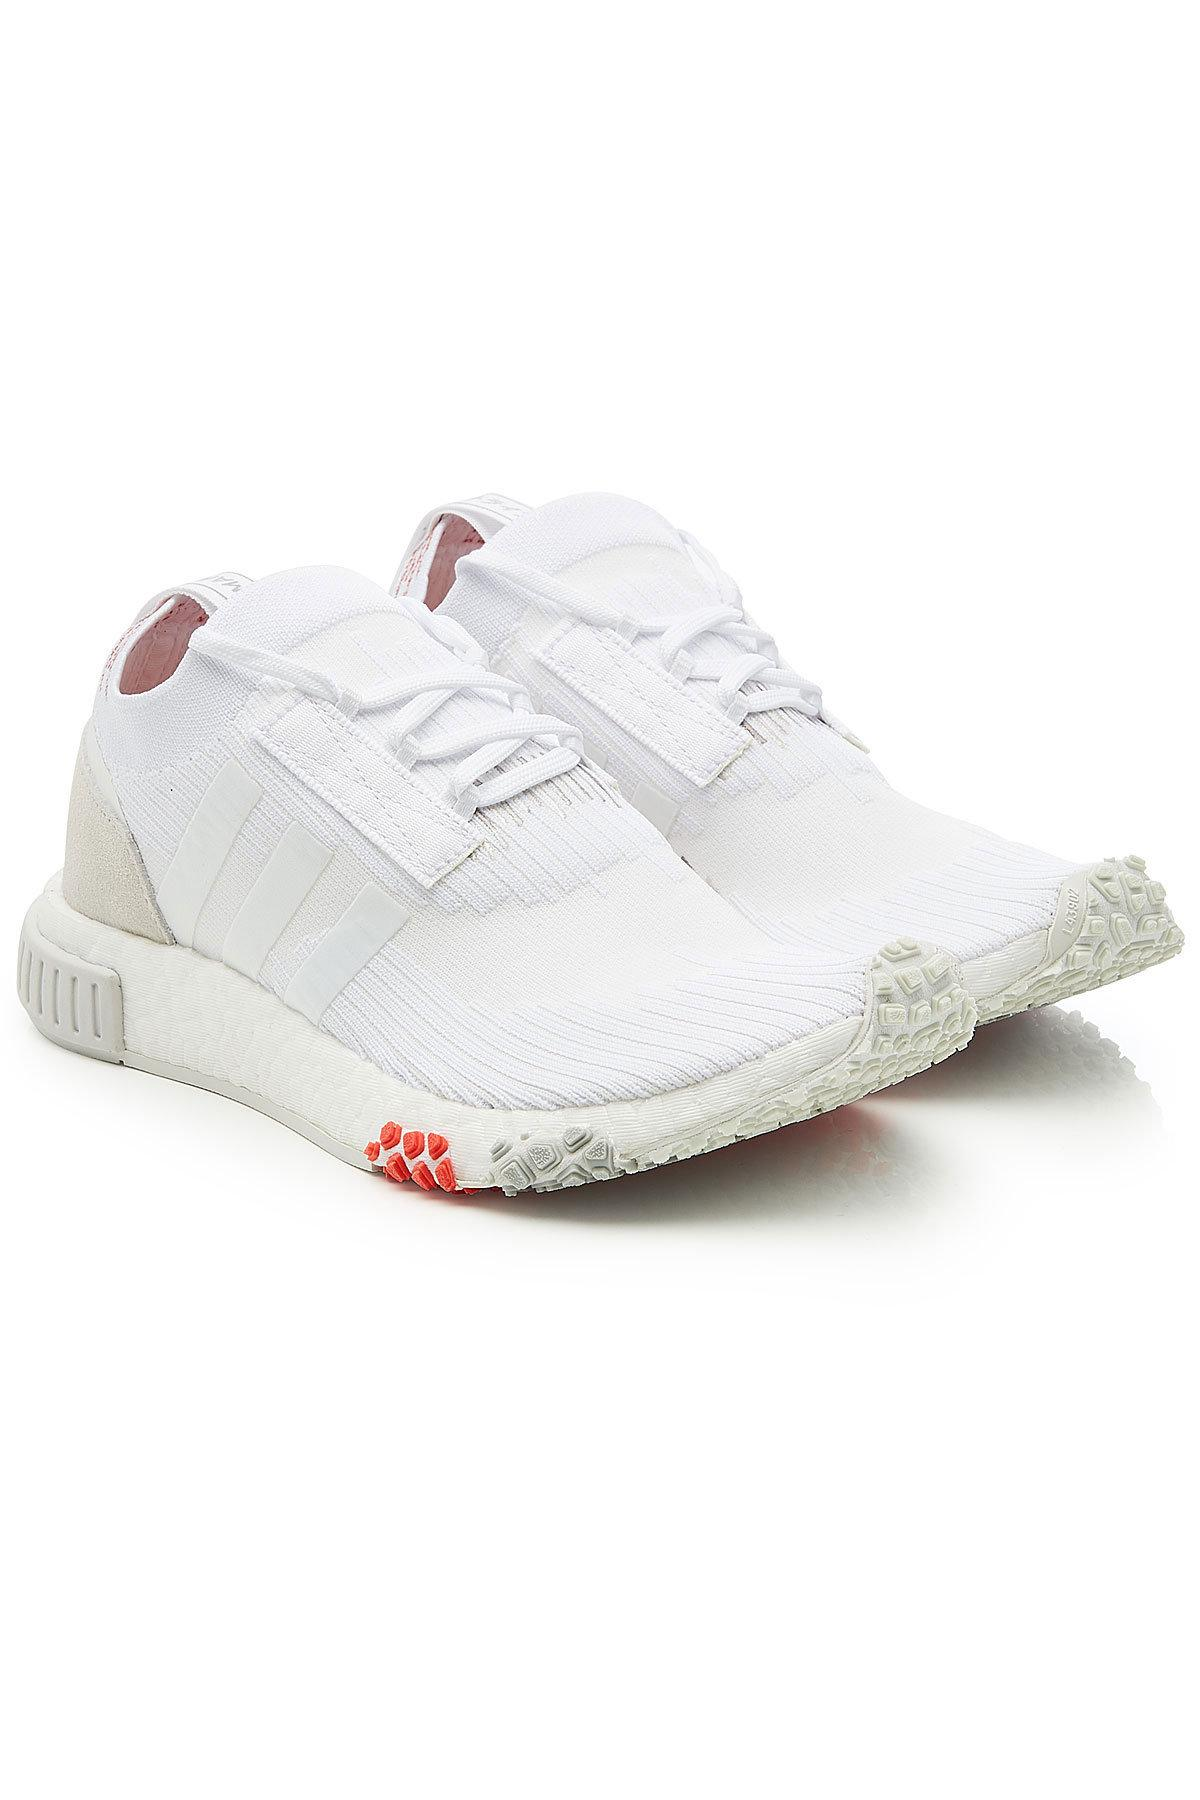 best authentic 617ab 9c54f adidas Originals. Womens White Nmd Racer Primeknit Sneakers